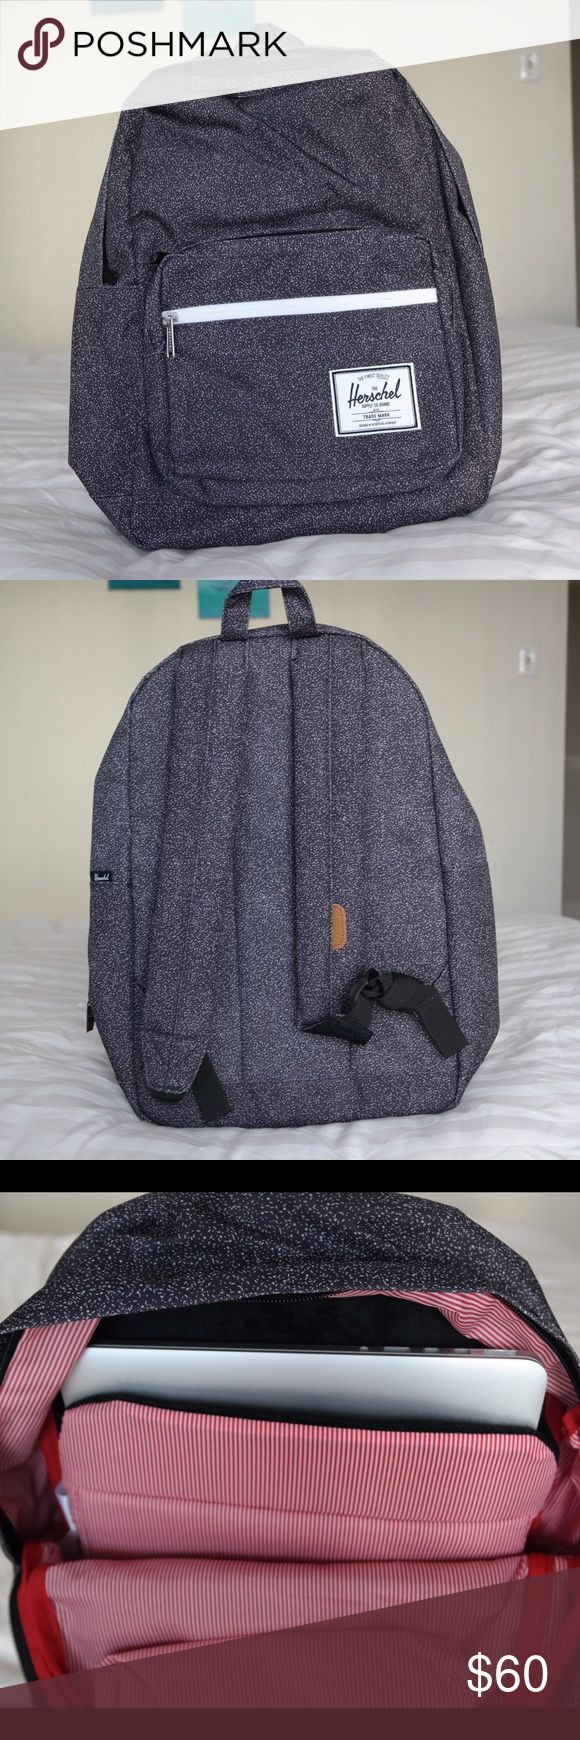 """Herschel Pop Quiz backpack Brand new, never used, tags were removed. Exterior has 2 front pockets (one with key clip) and fleece lined sunglasses compartment. Interior has padded fleece 15"""" laptop sleeve and internal media pocket with headphone port. Laptop and headphones shown are NOT INCLUDED More pics available.. Herschel Supply Company Bags Backpacks"""